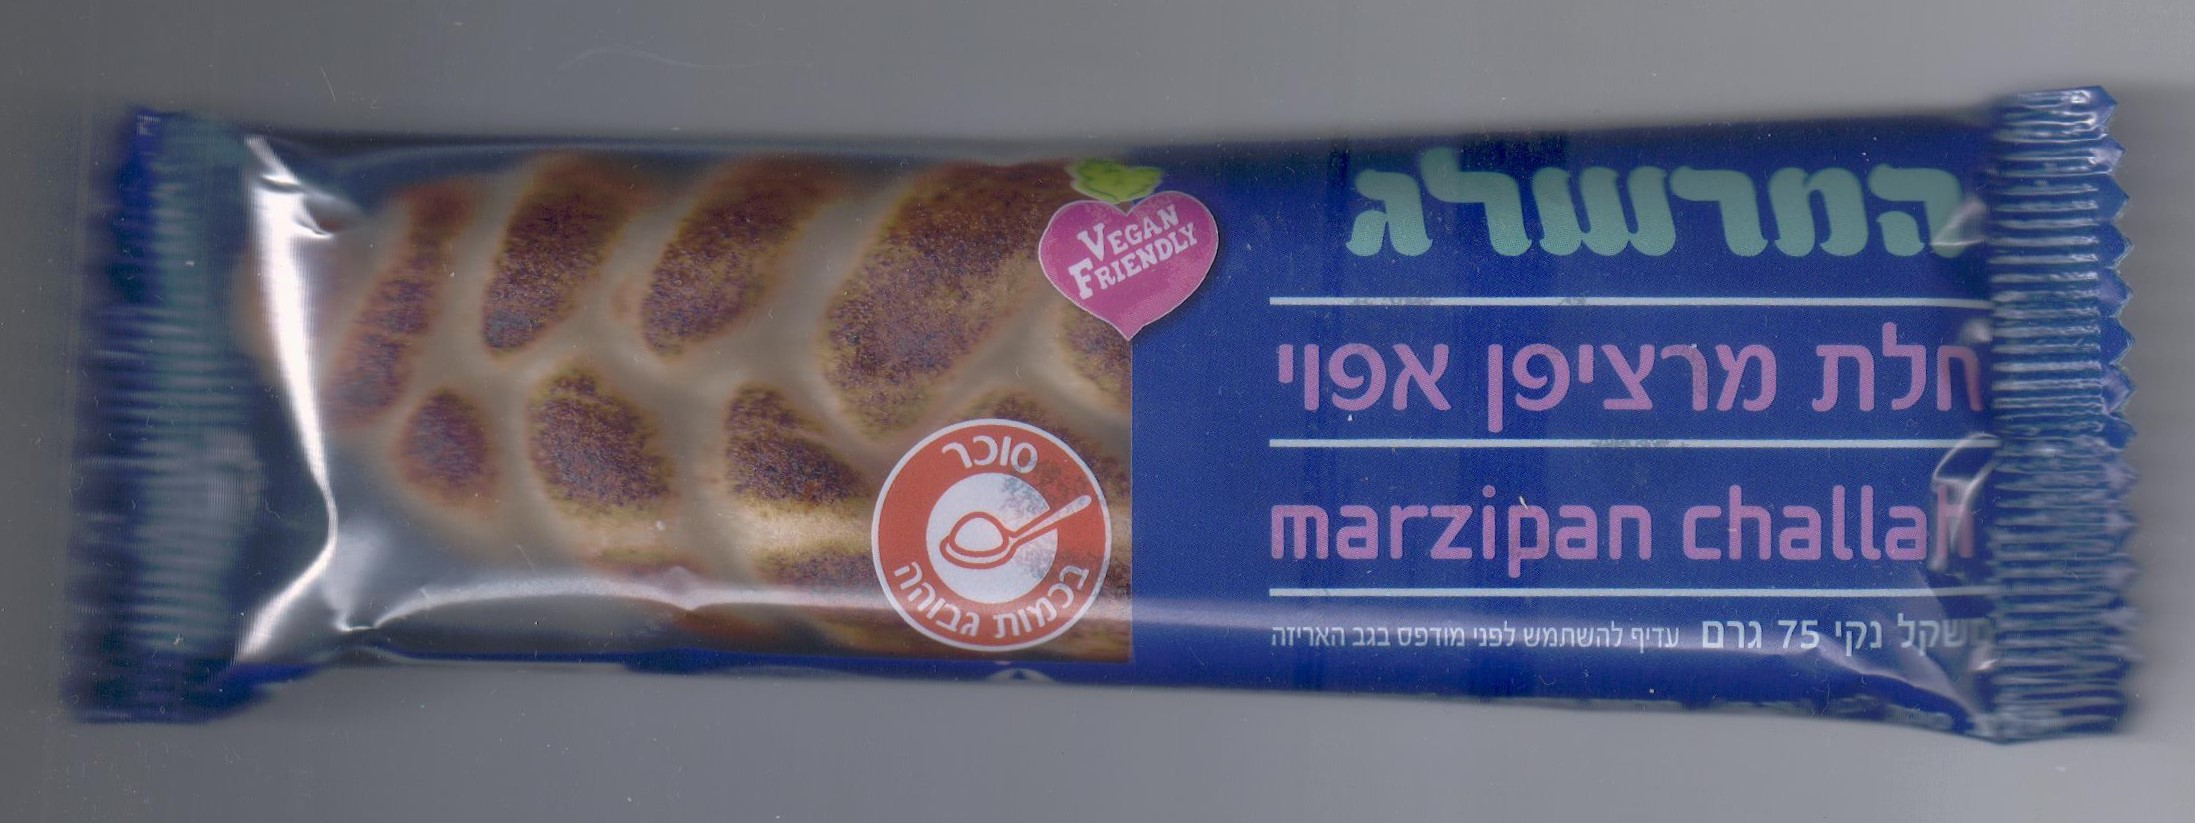 Marzipan Challah  75 grams  Kosher pareve from המרשלג